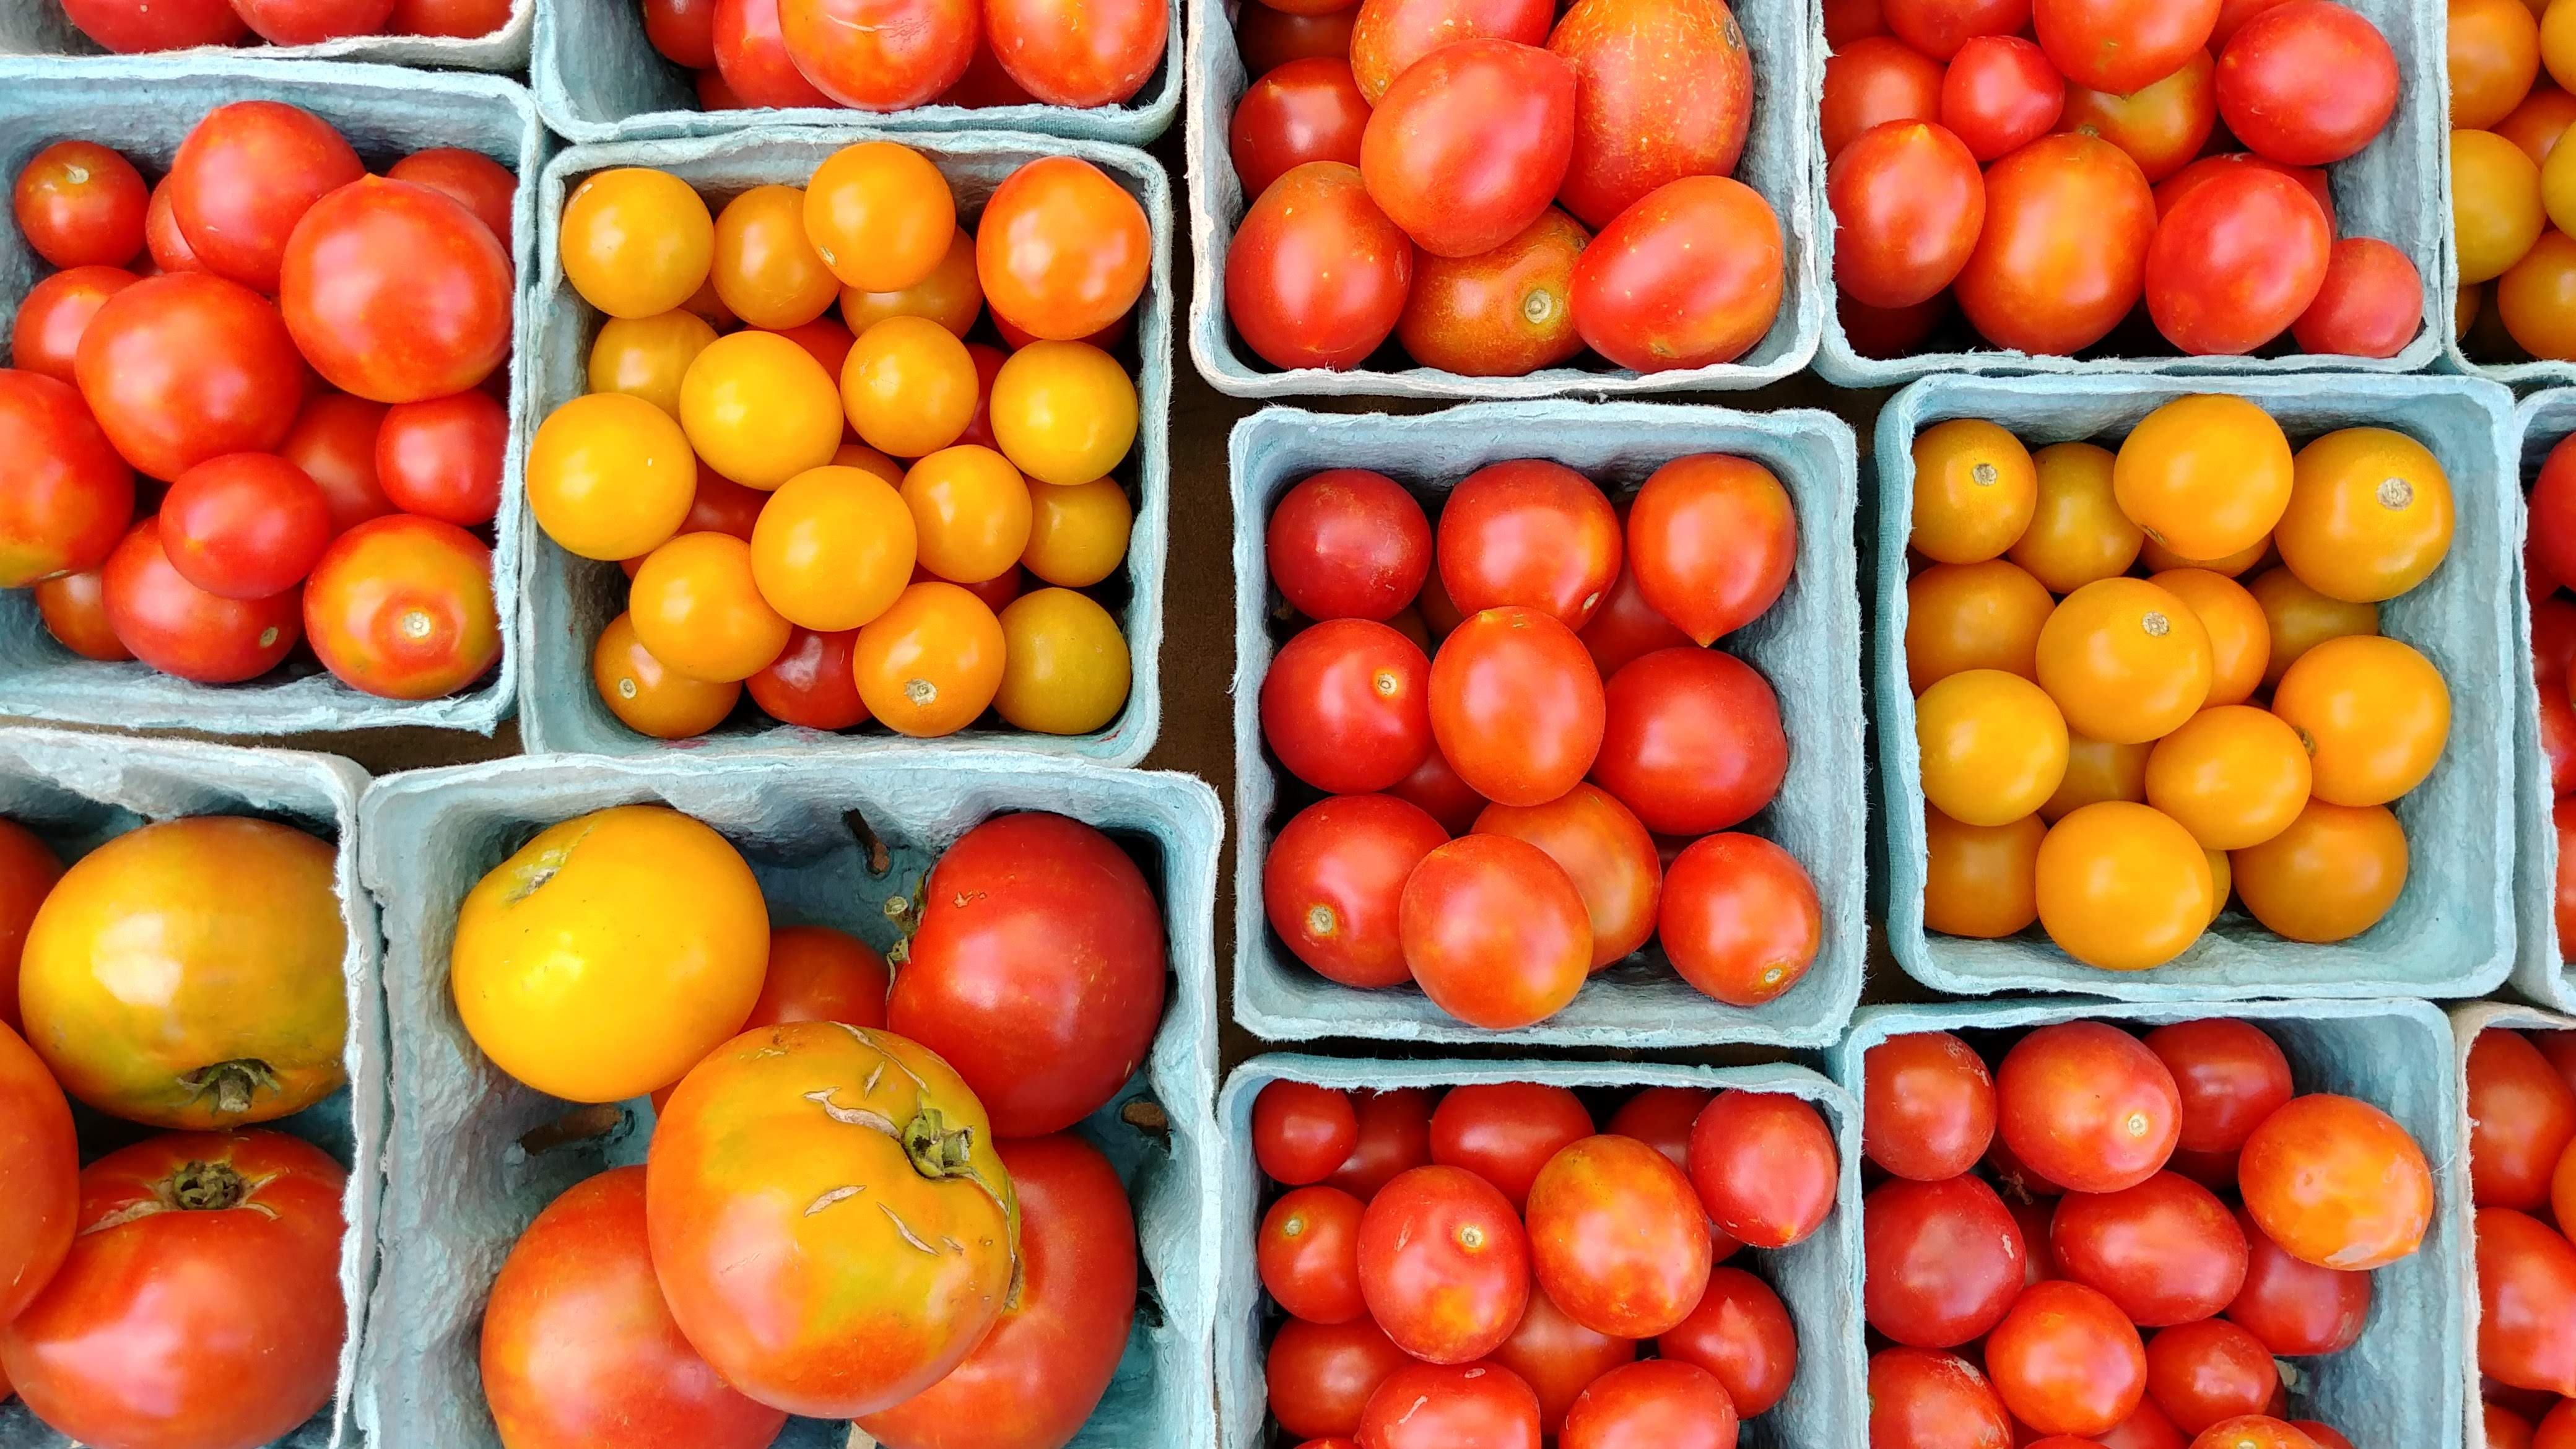 I M Adam And These Are My Tomatoes The Land Connection